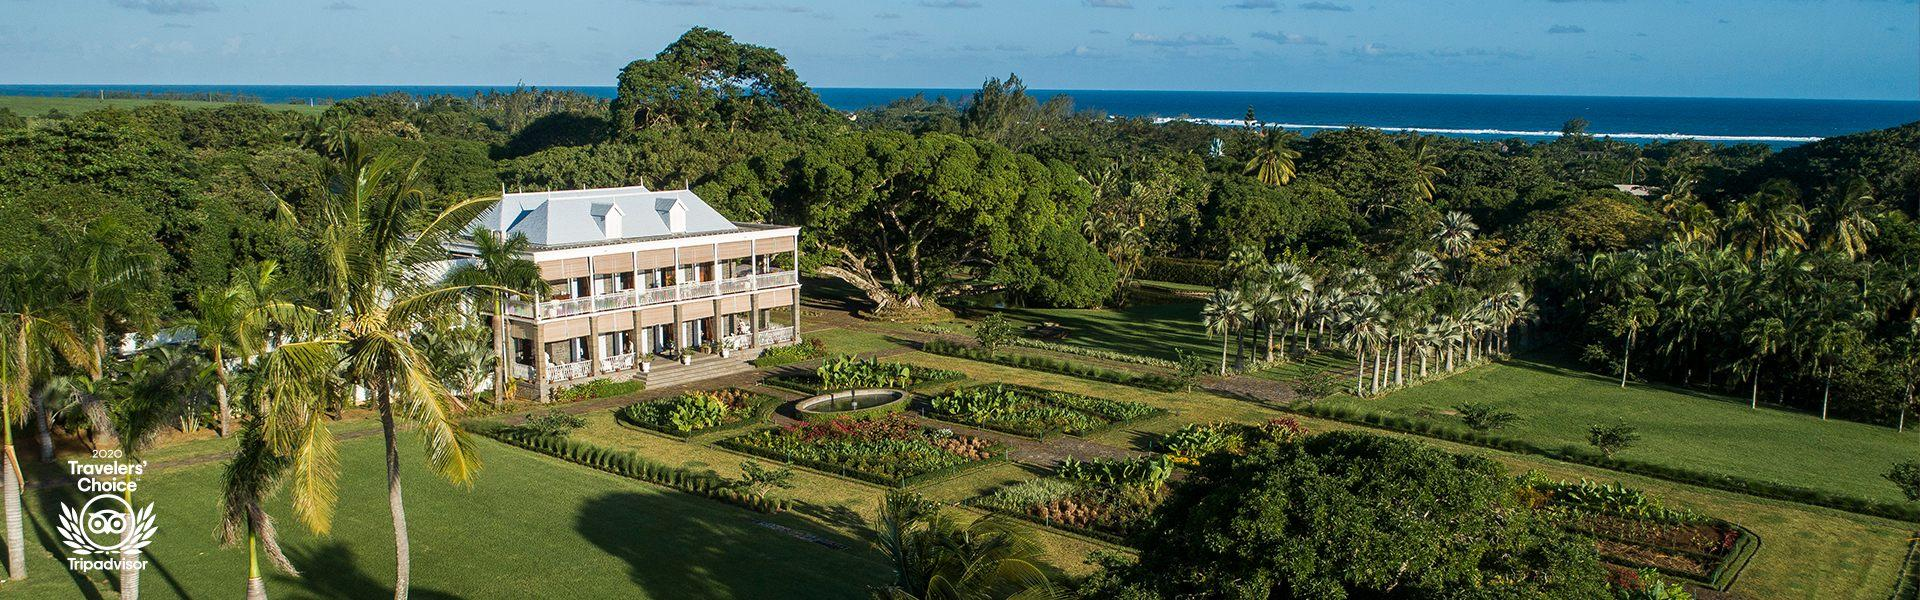 Heritage le chateau 19th century manoir south of mauritius